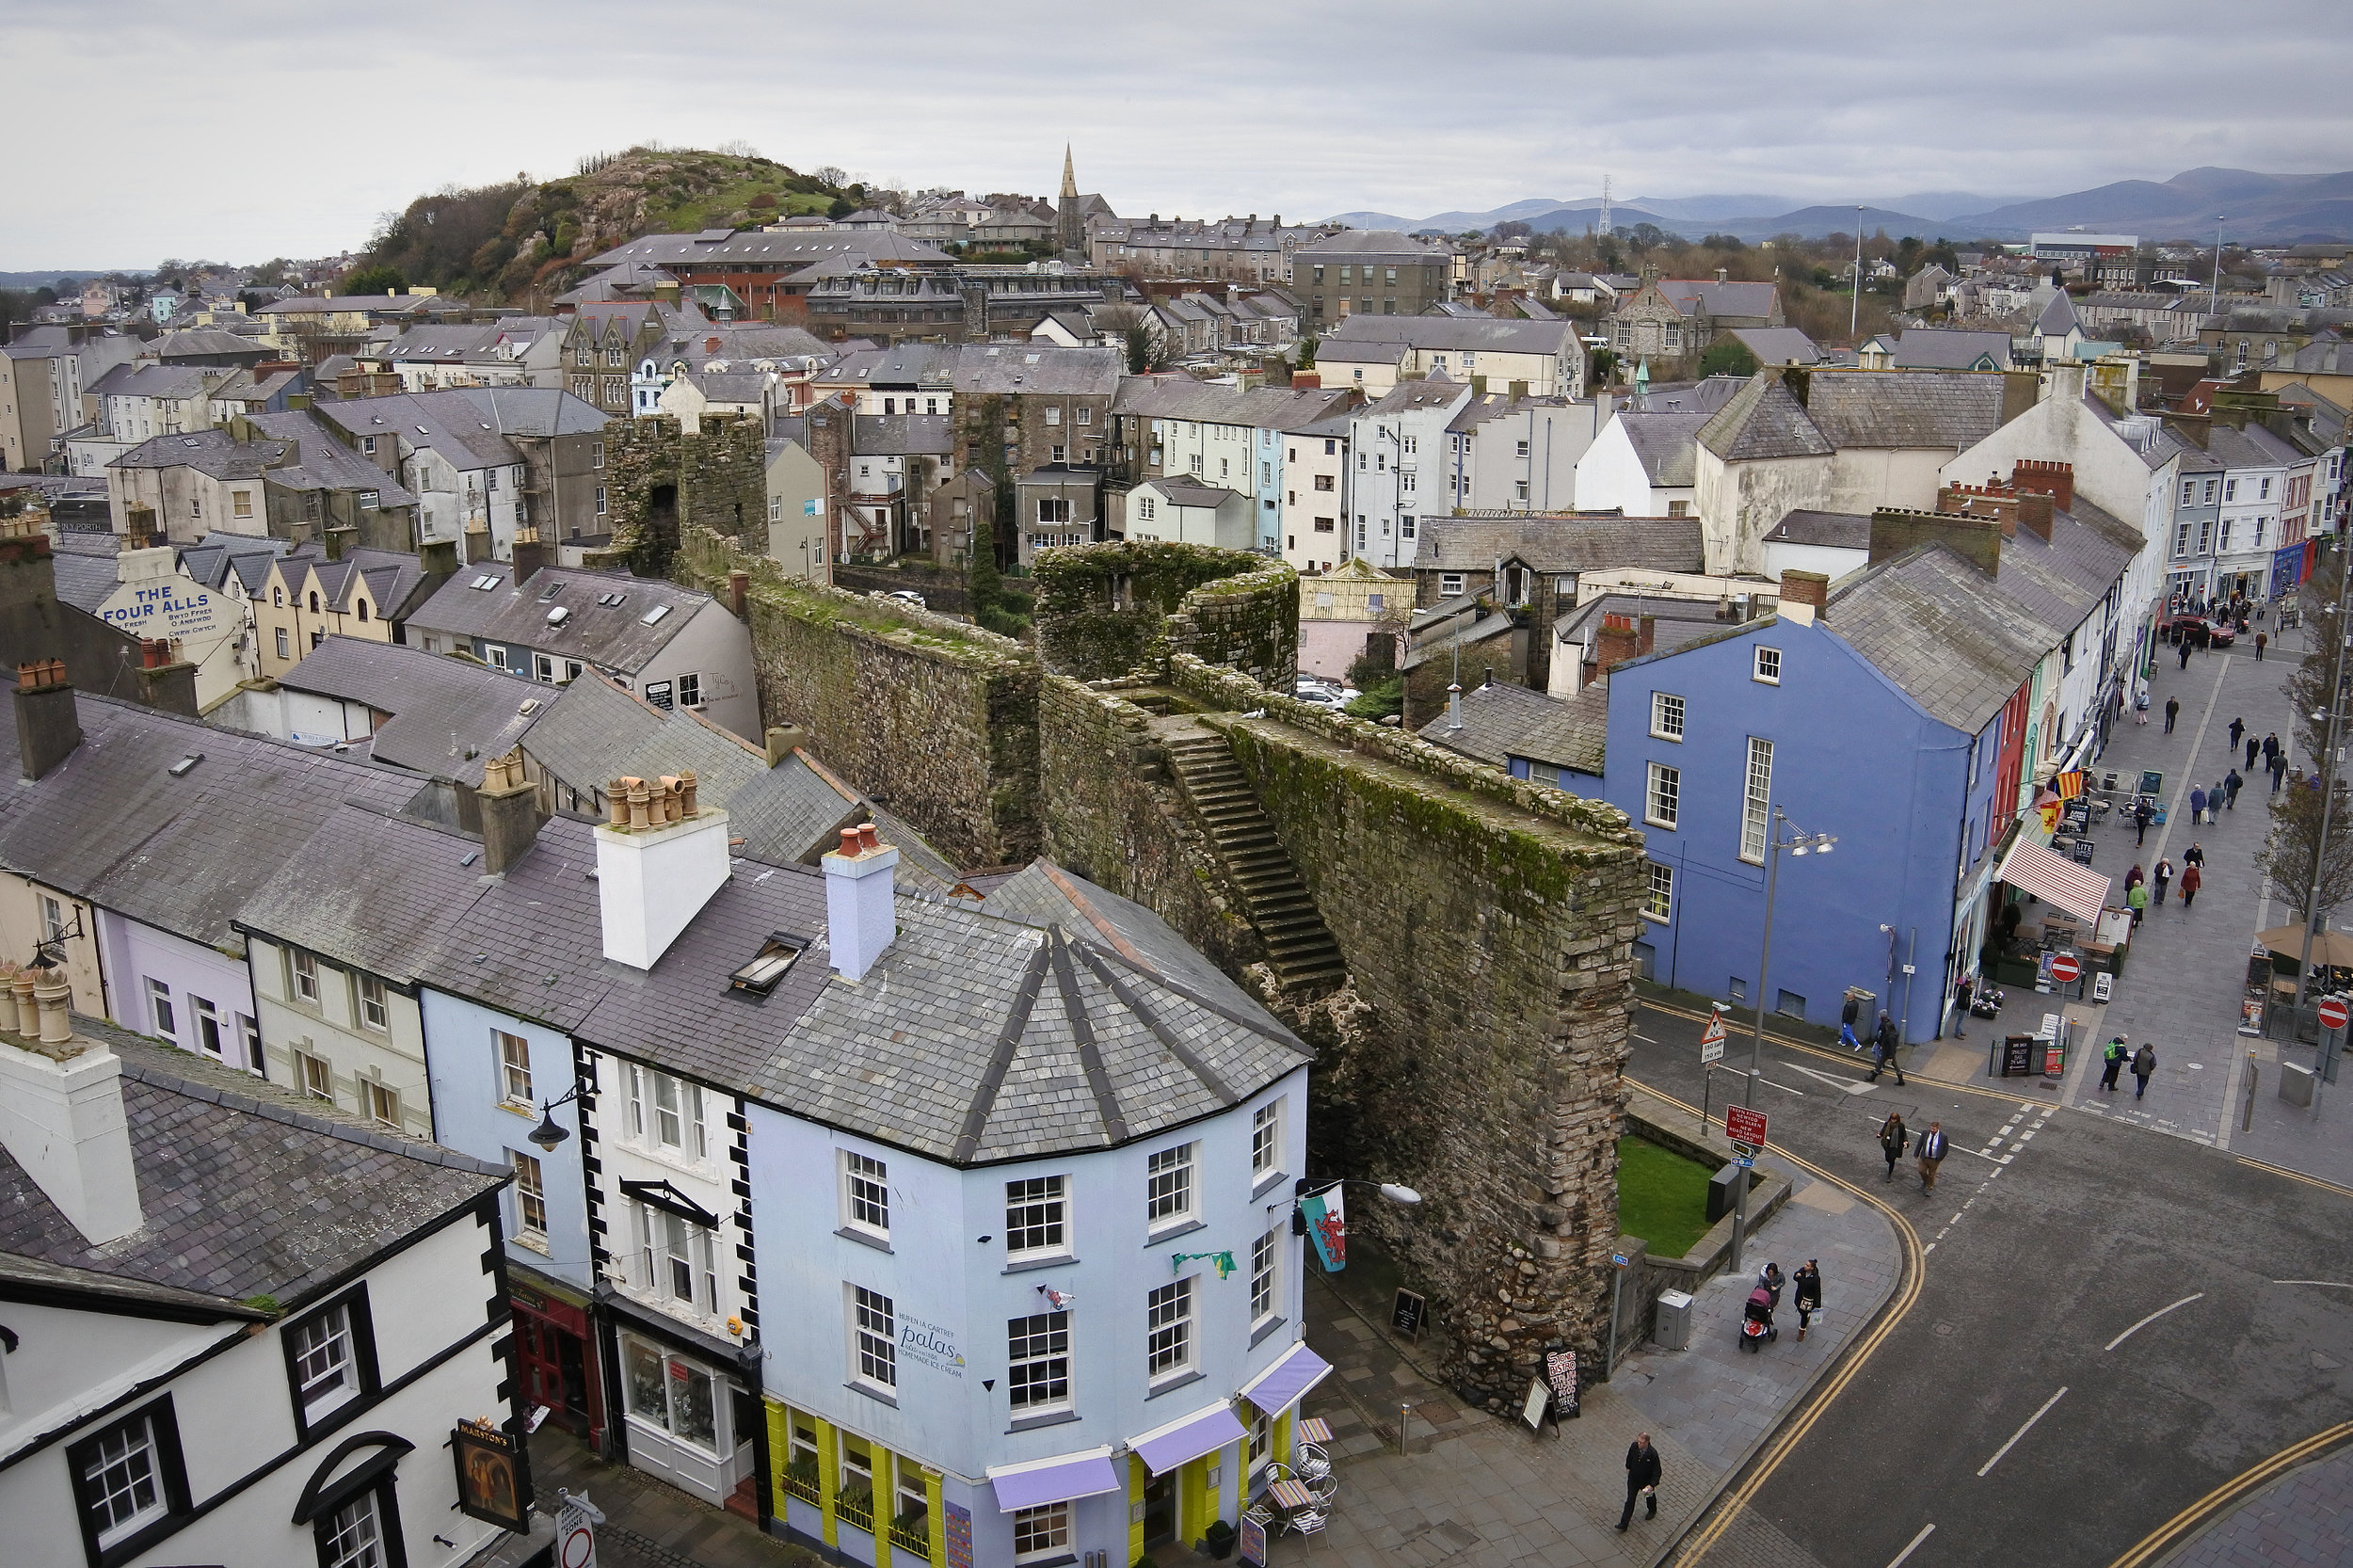 View of Caernarfon from the castle.